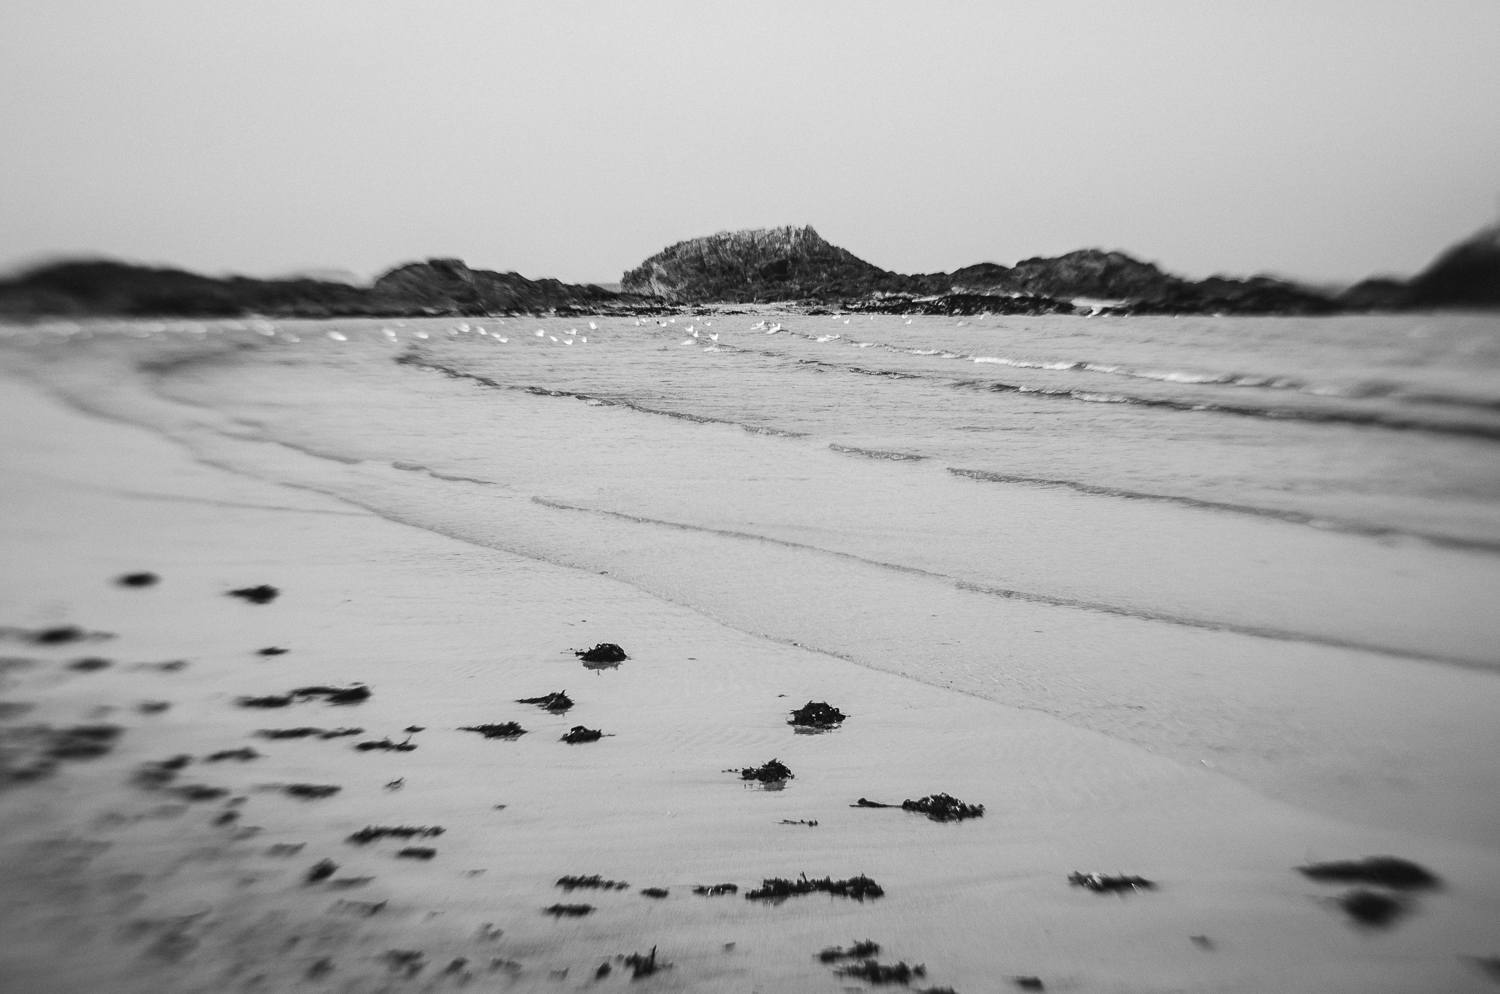 Beach-3-Saint-Malo-lensbaby-colourplay2-2013.jpg